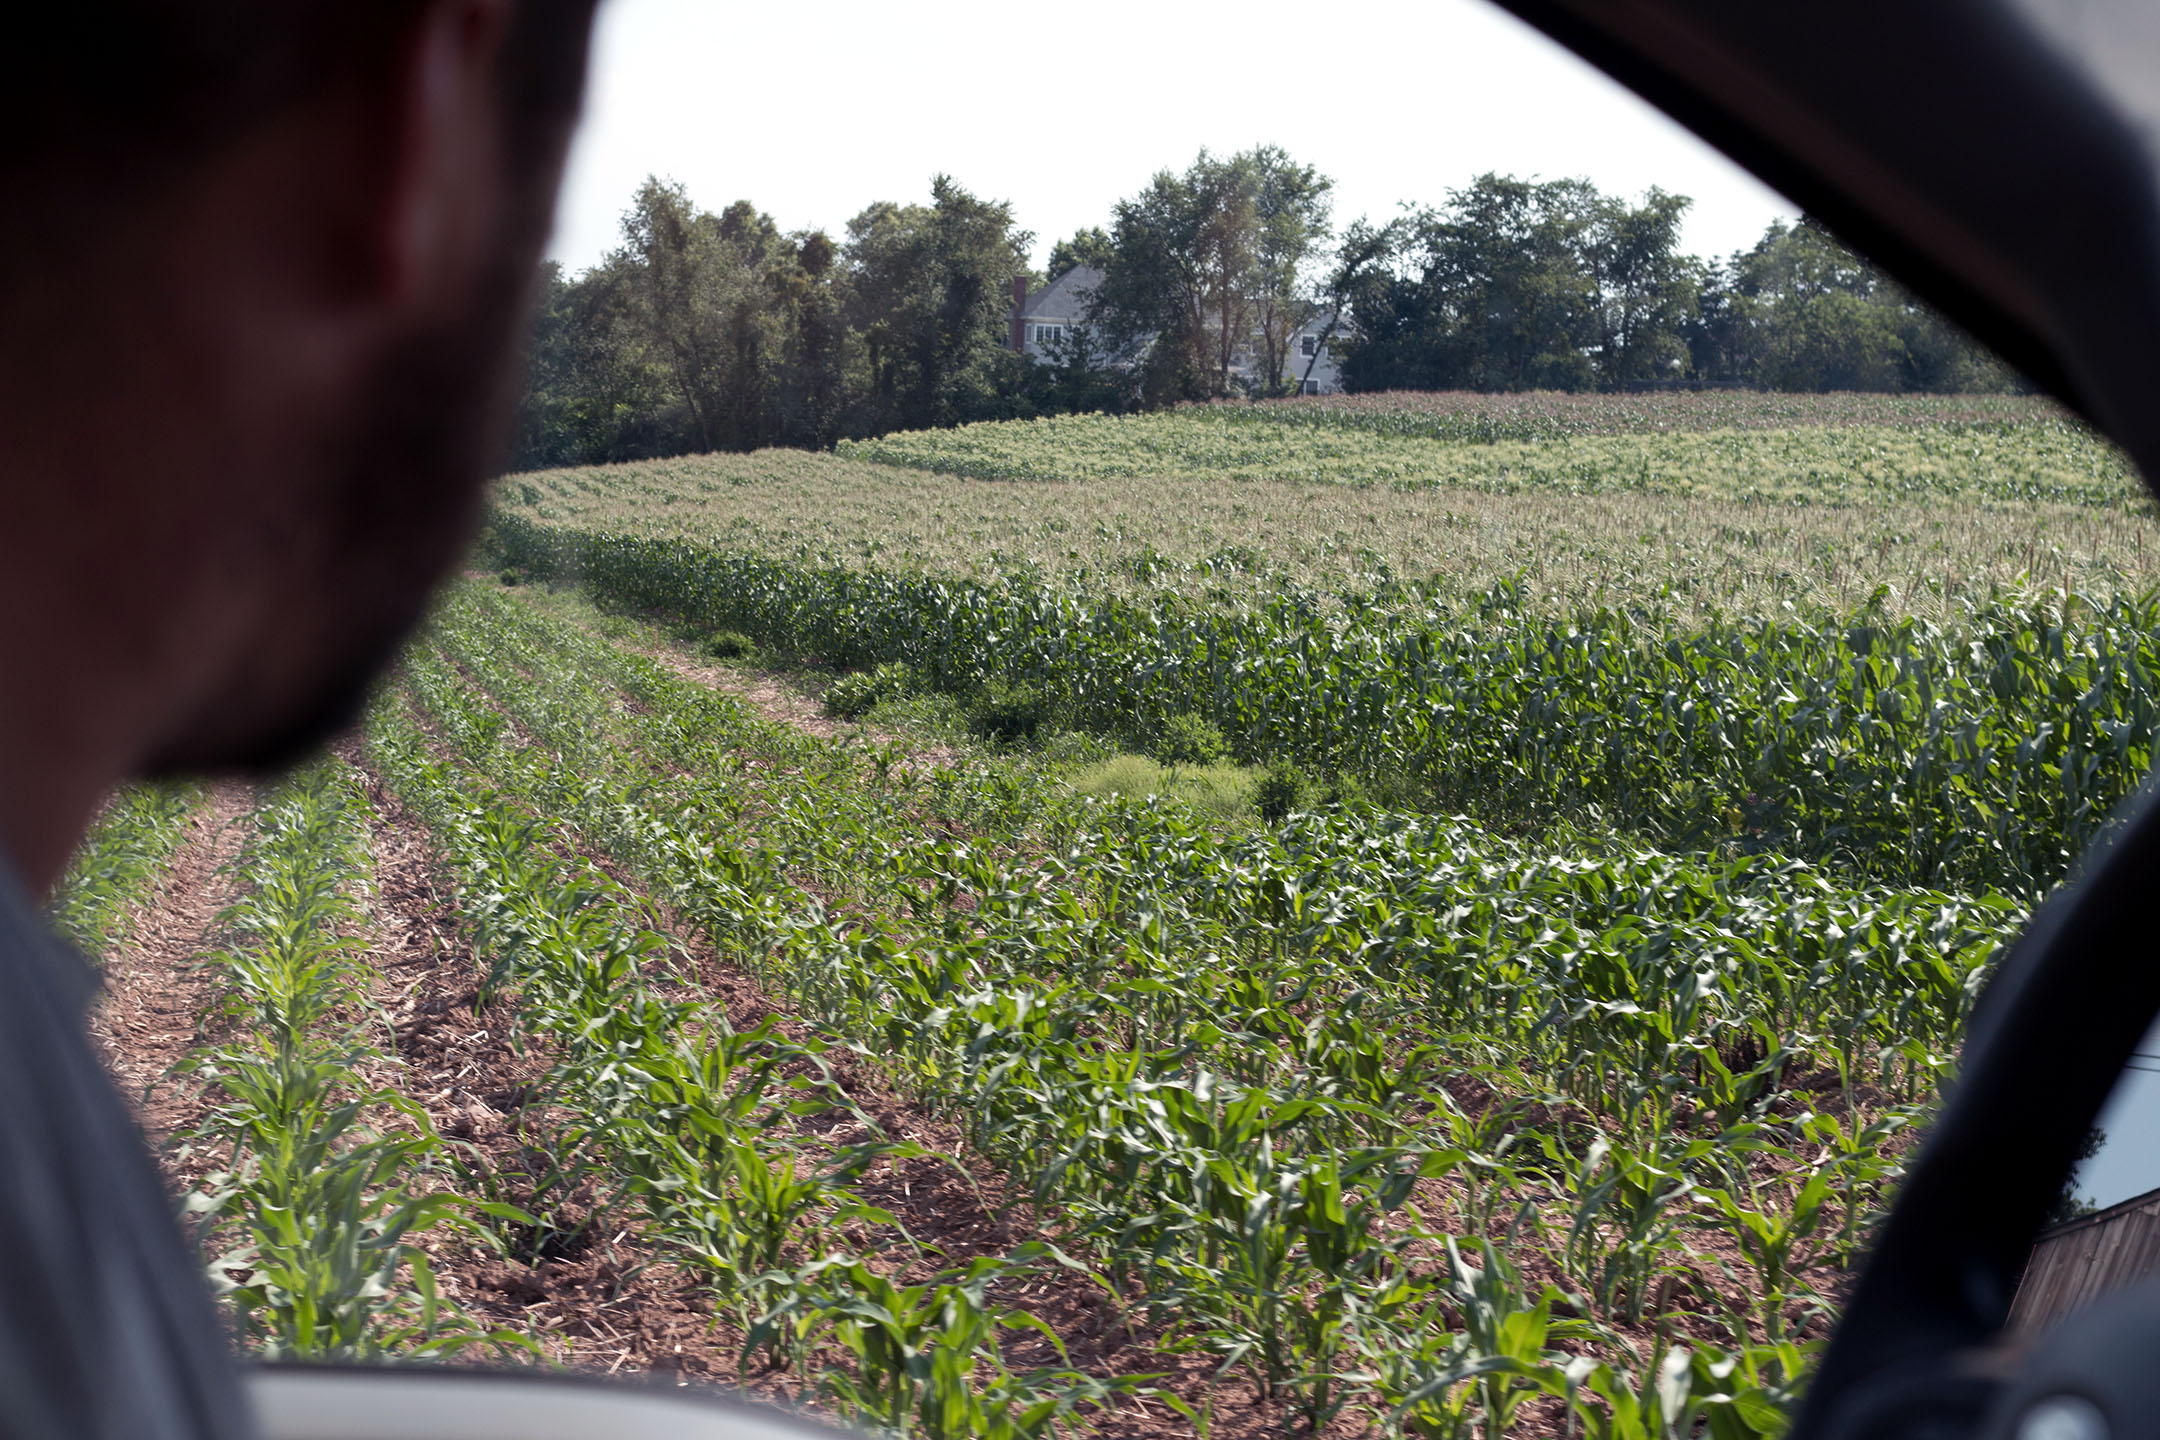 William DellaCamera drives by the corn fields on July 13th, 2018.